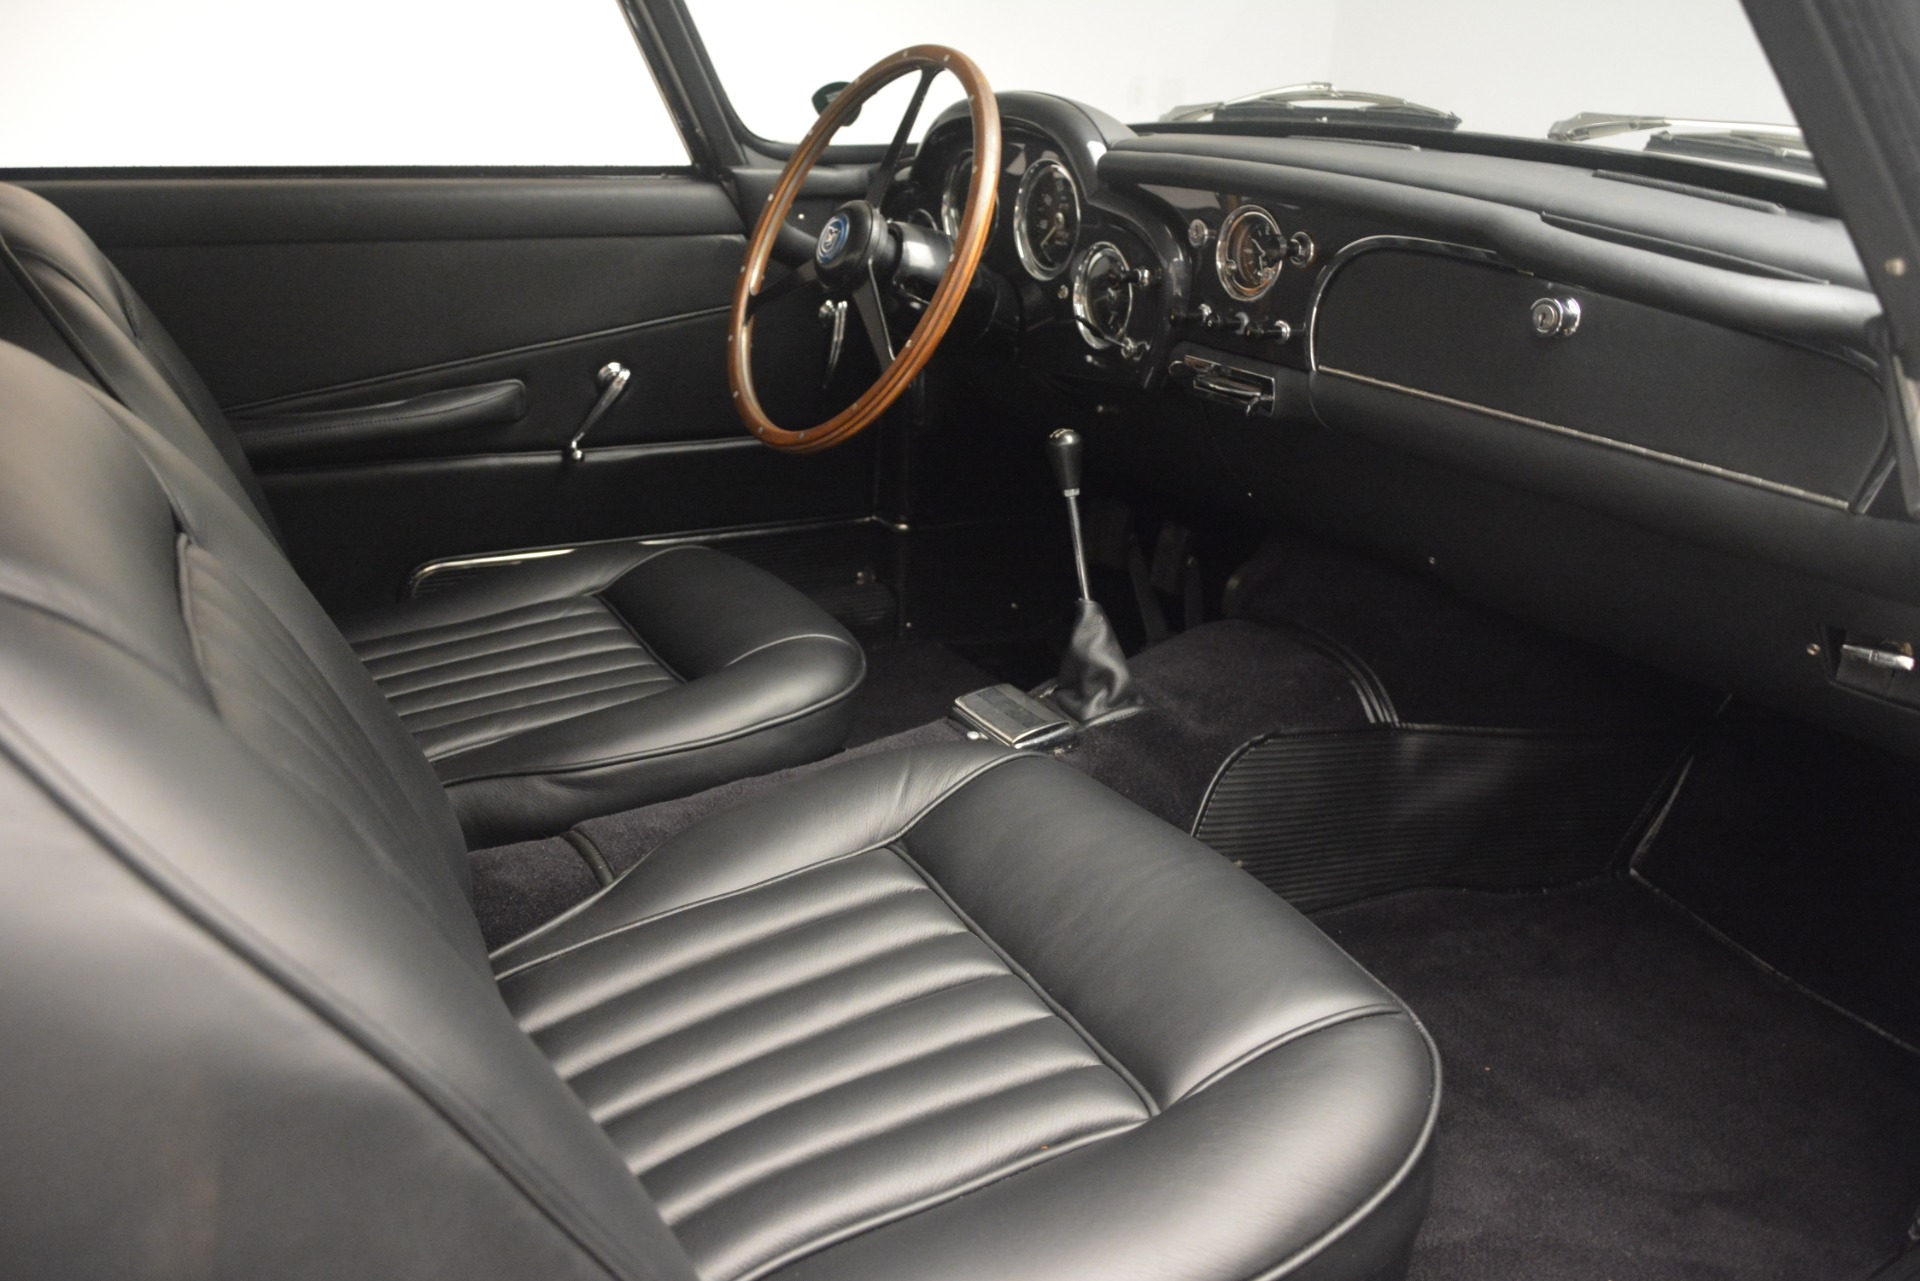 Used 1961 Aston Martin DB4 Series IV Coupe For Sale In Greenwich, CT 3186_p25